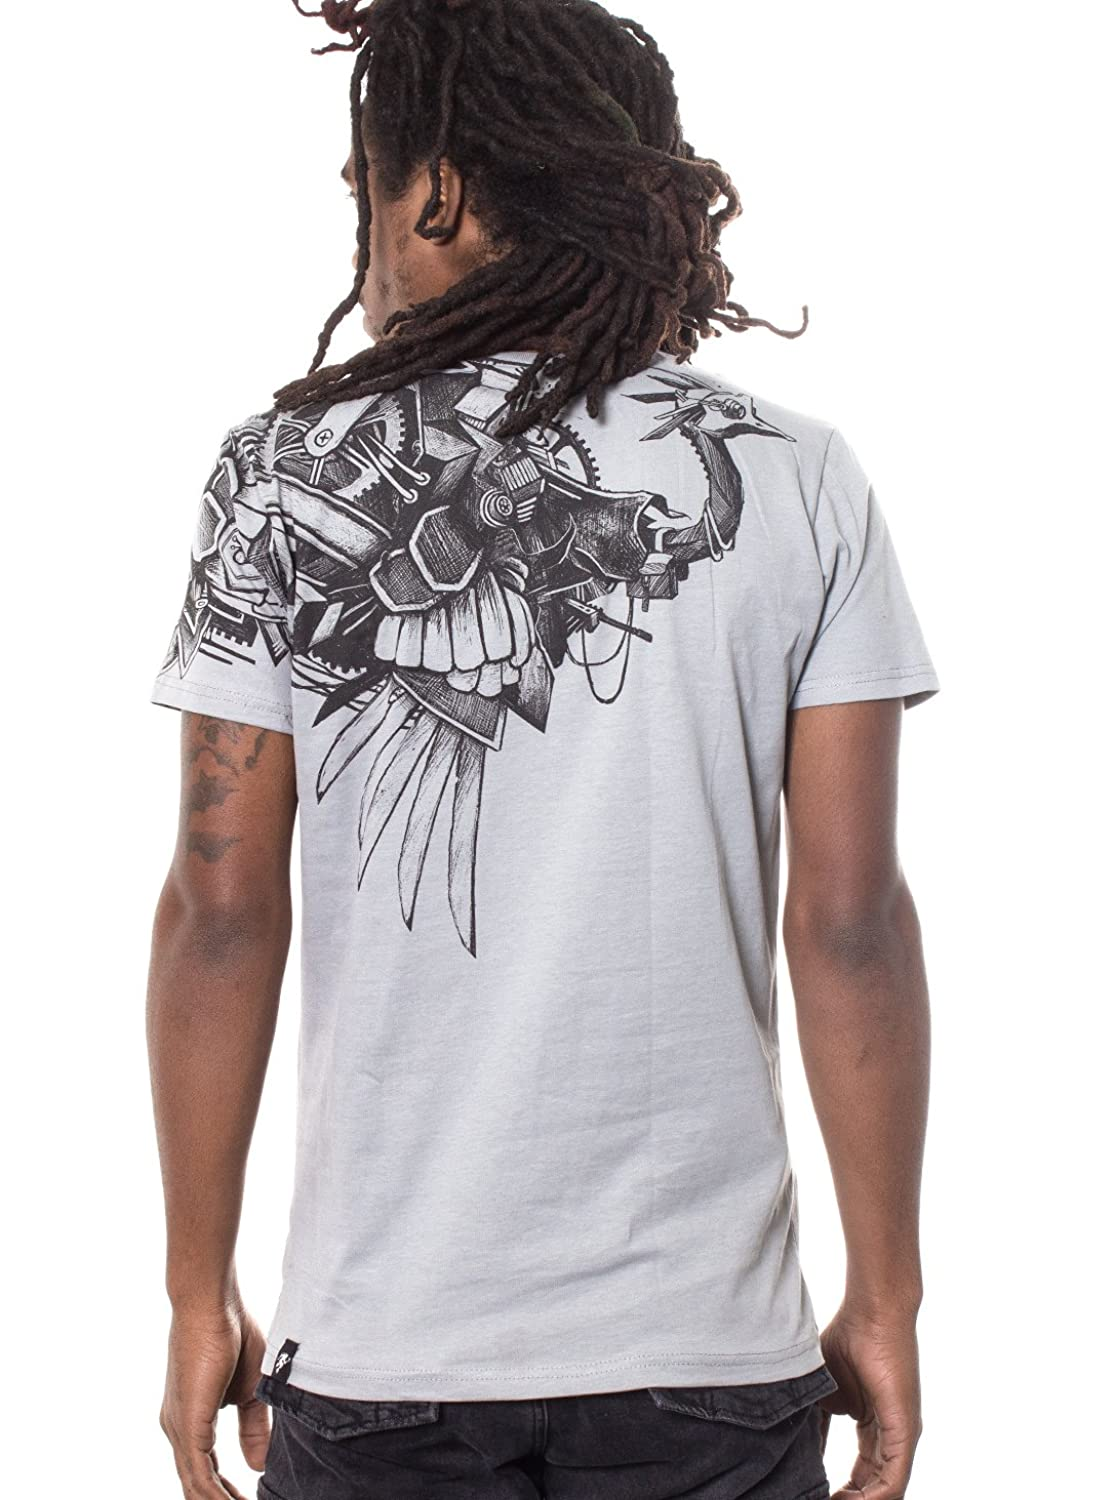 Steampunk Ostrich T Shirt For Men - 100% Cotton Tee Regular Fit - Streetwear